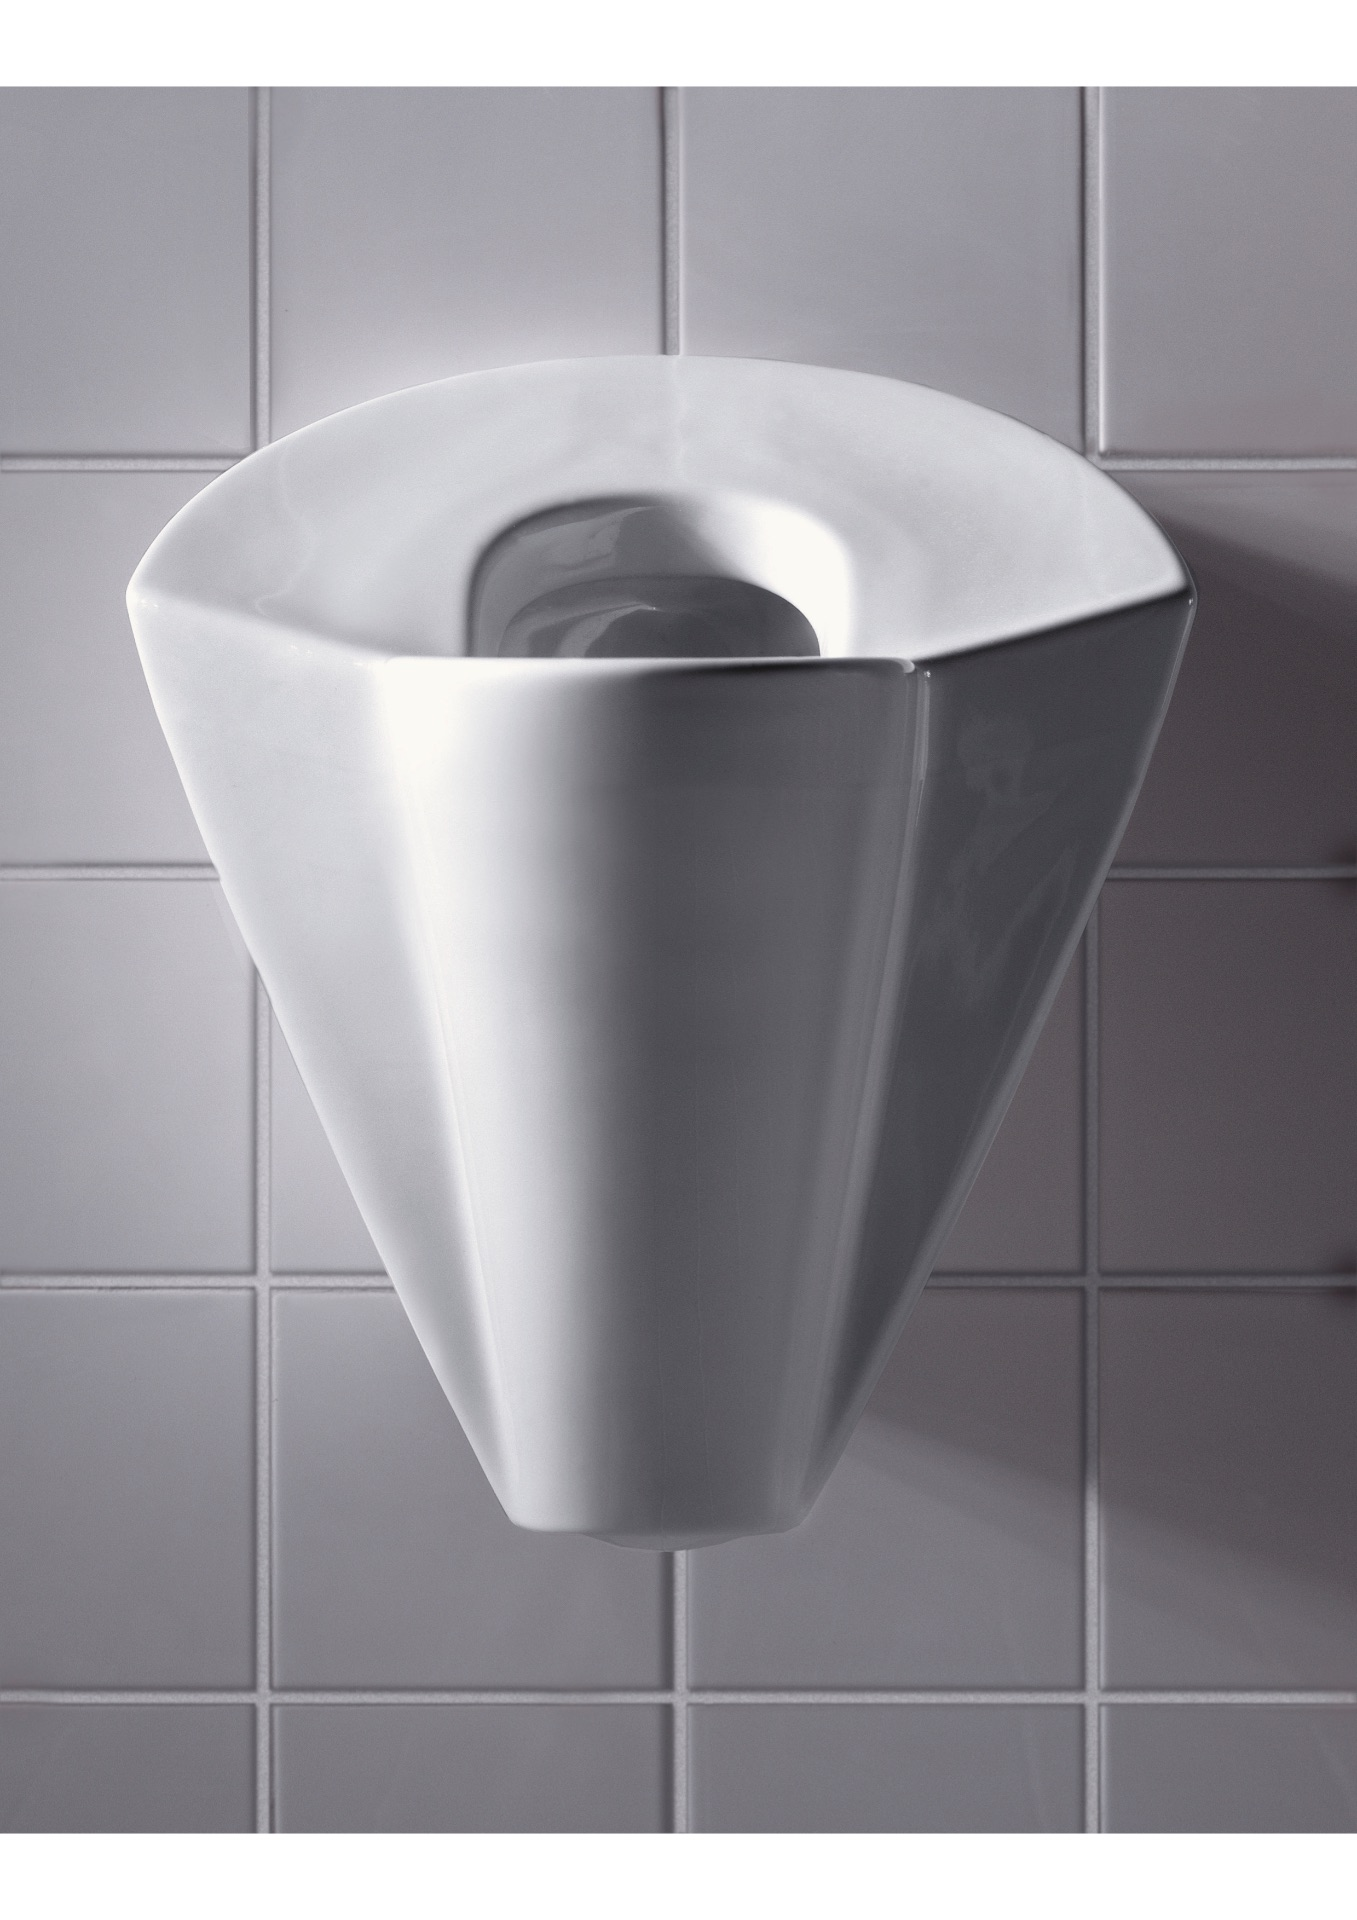 lady p female urinal in white ceramic on white tiled wall.